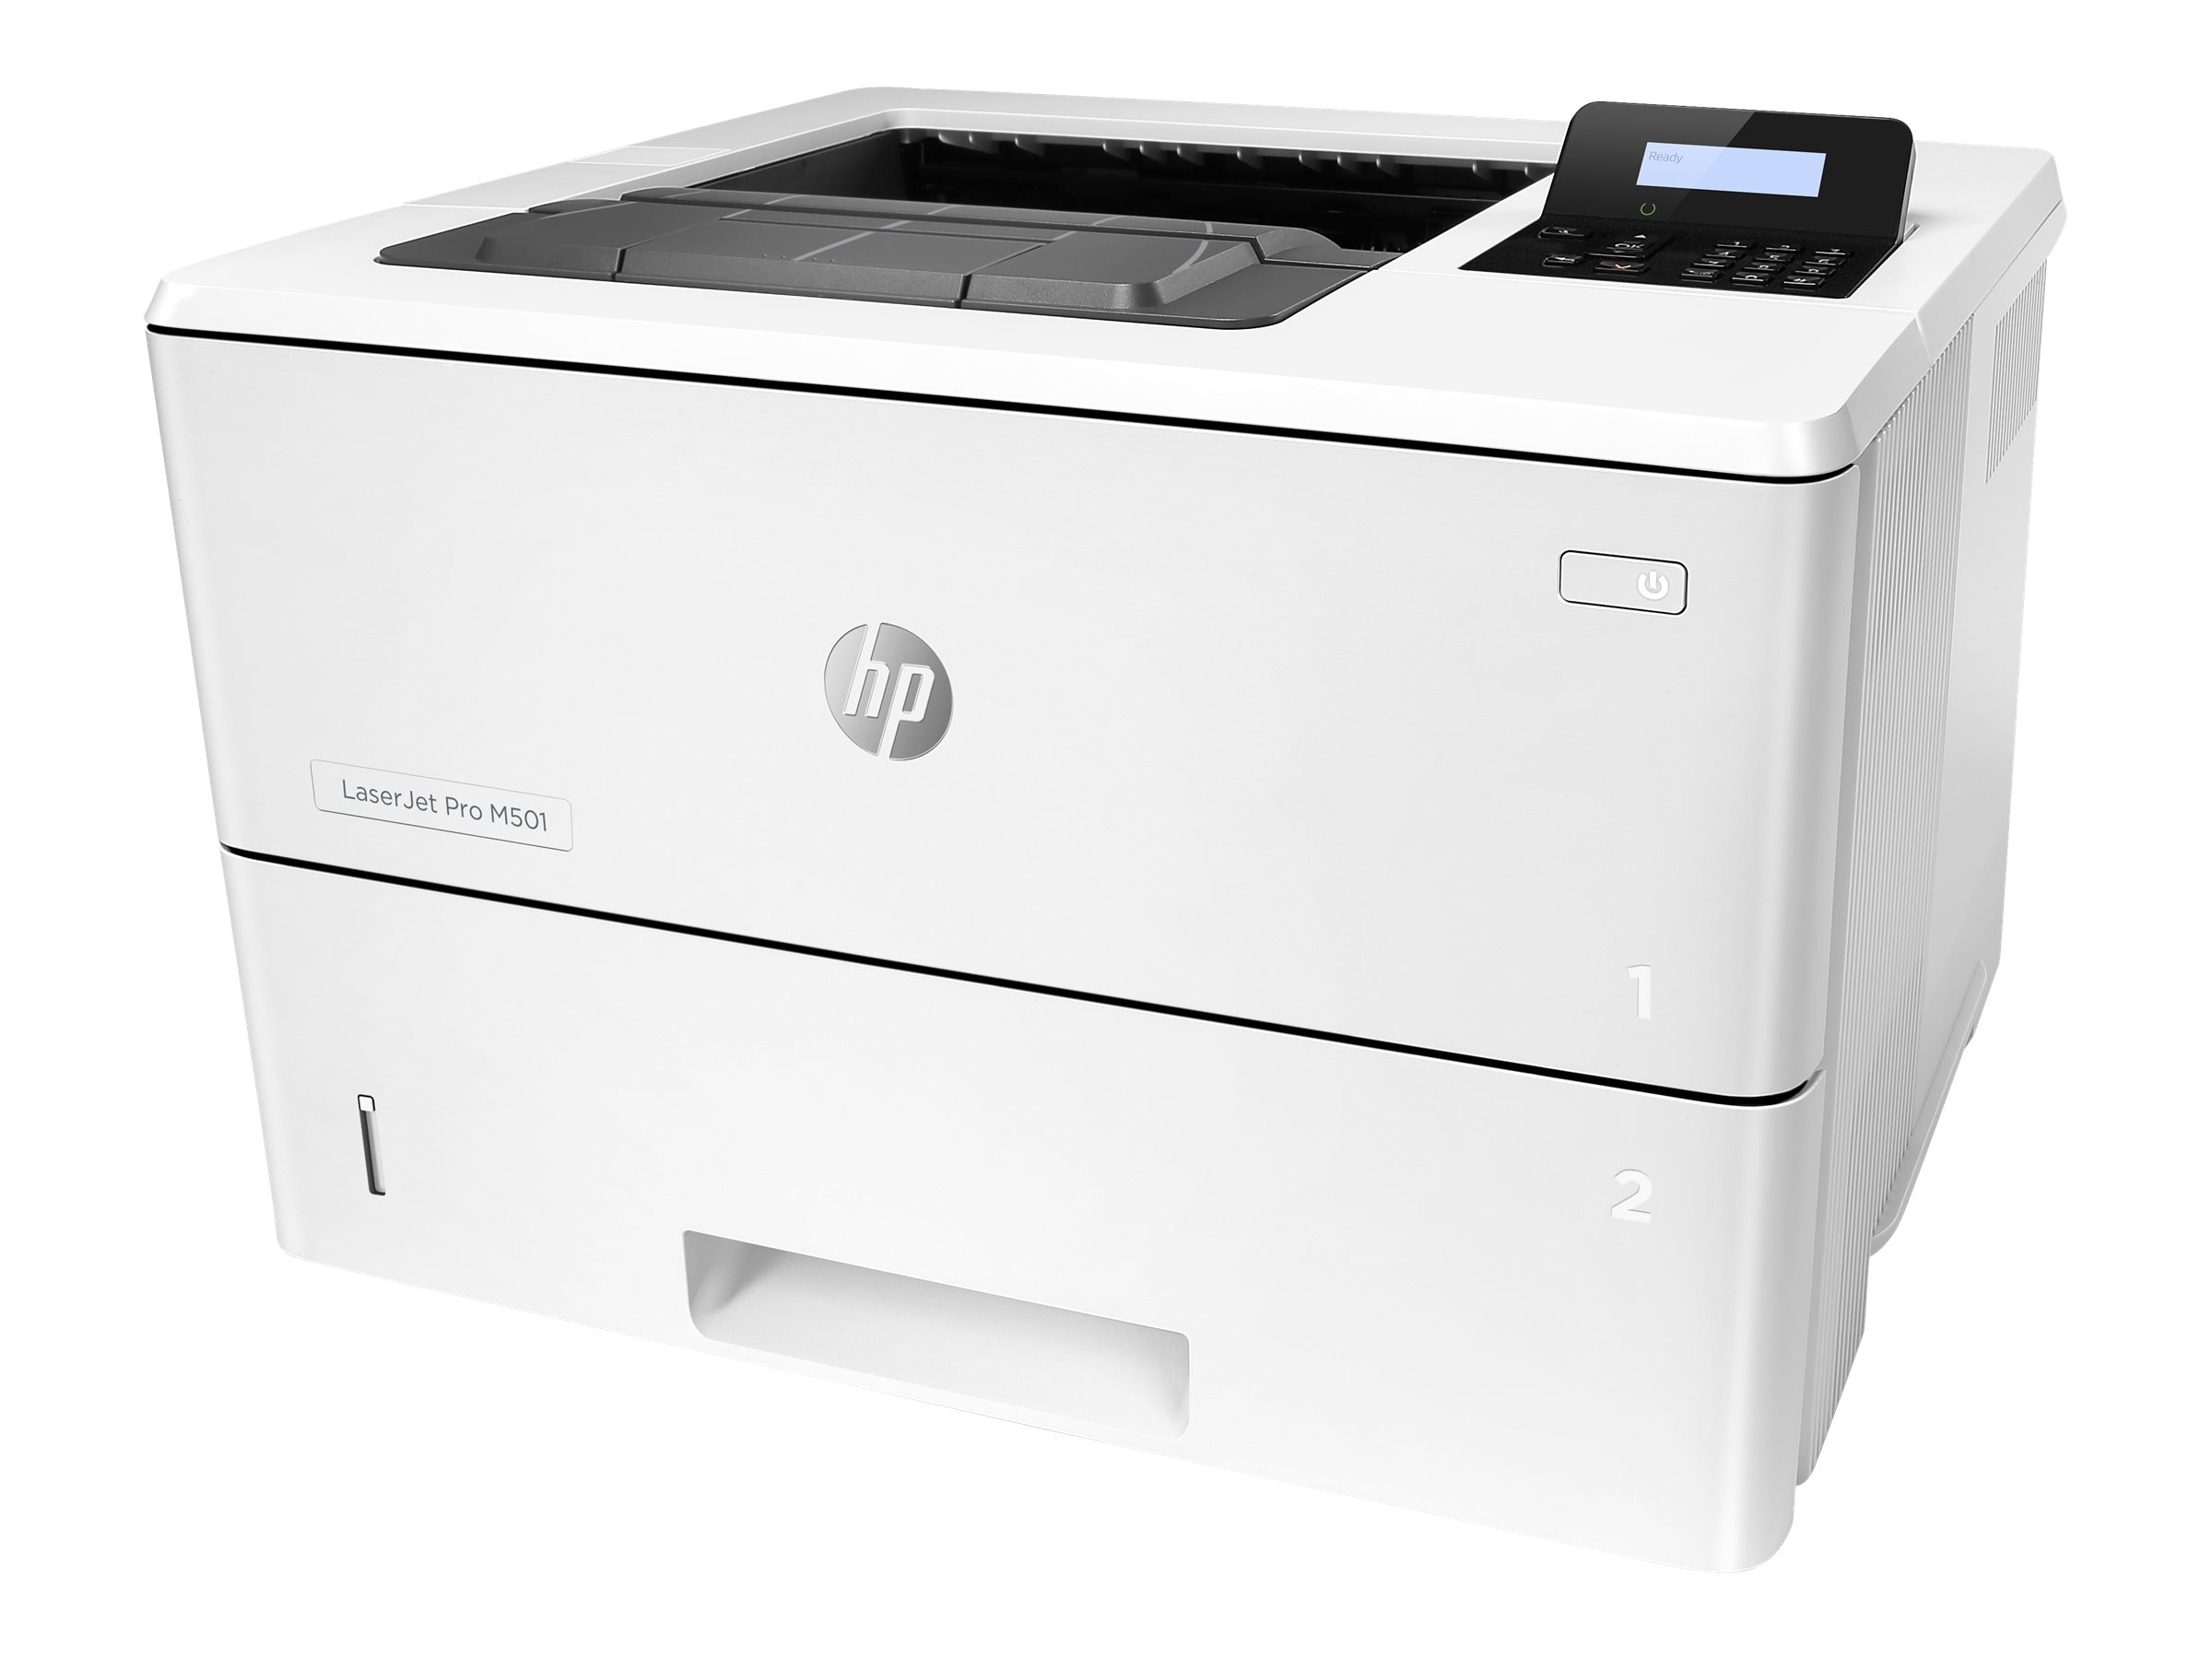 HP LaserJet Pro M501dn Office Black & White Laser Printer, J8H61A#BGJ, 31832846, Printers - Laser & LED (monochrome)